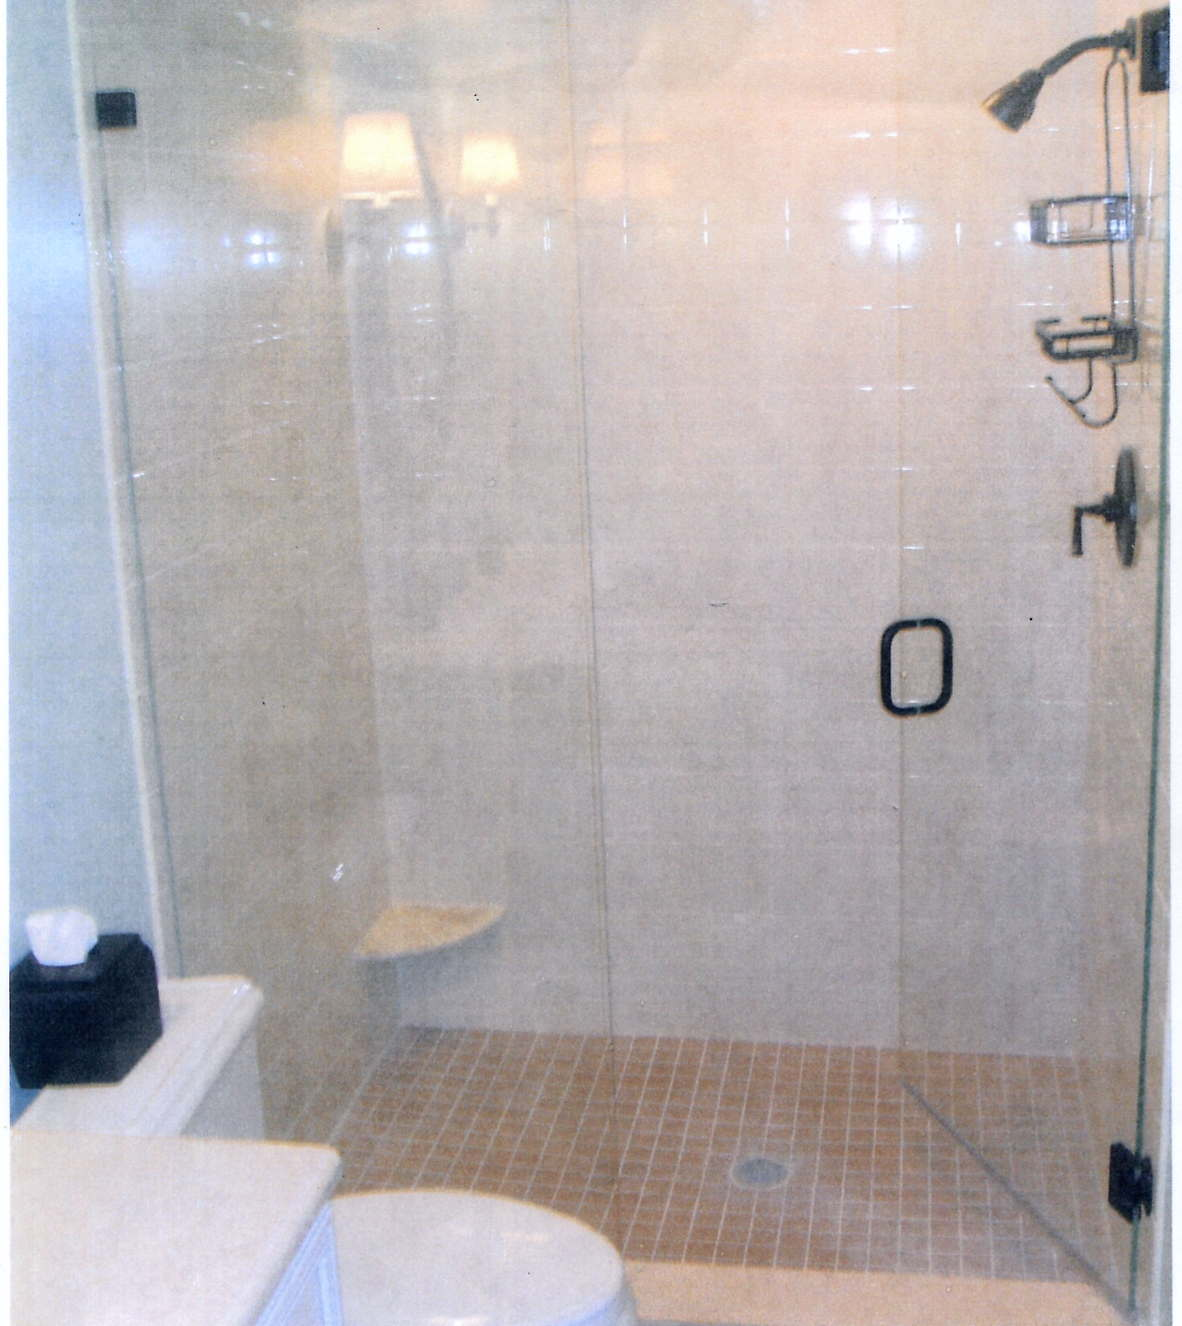 frameless denver home size concept denverseamless of to maderesseamless enclosuresseamless luxury made seamlessres shower photo dreaded create glass doors depotseamless bathroom full enclosures custom seamless frosted